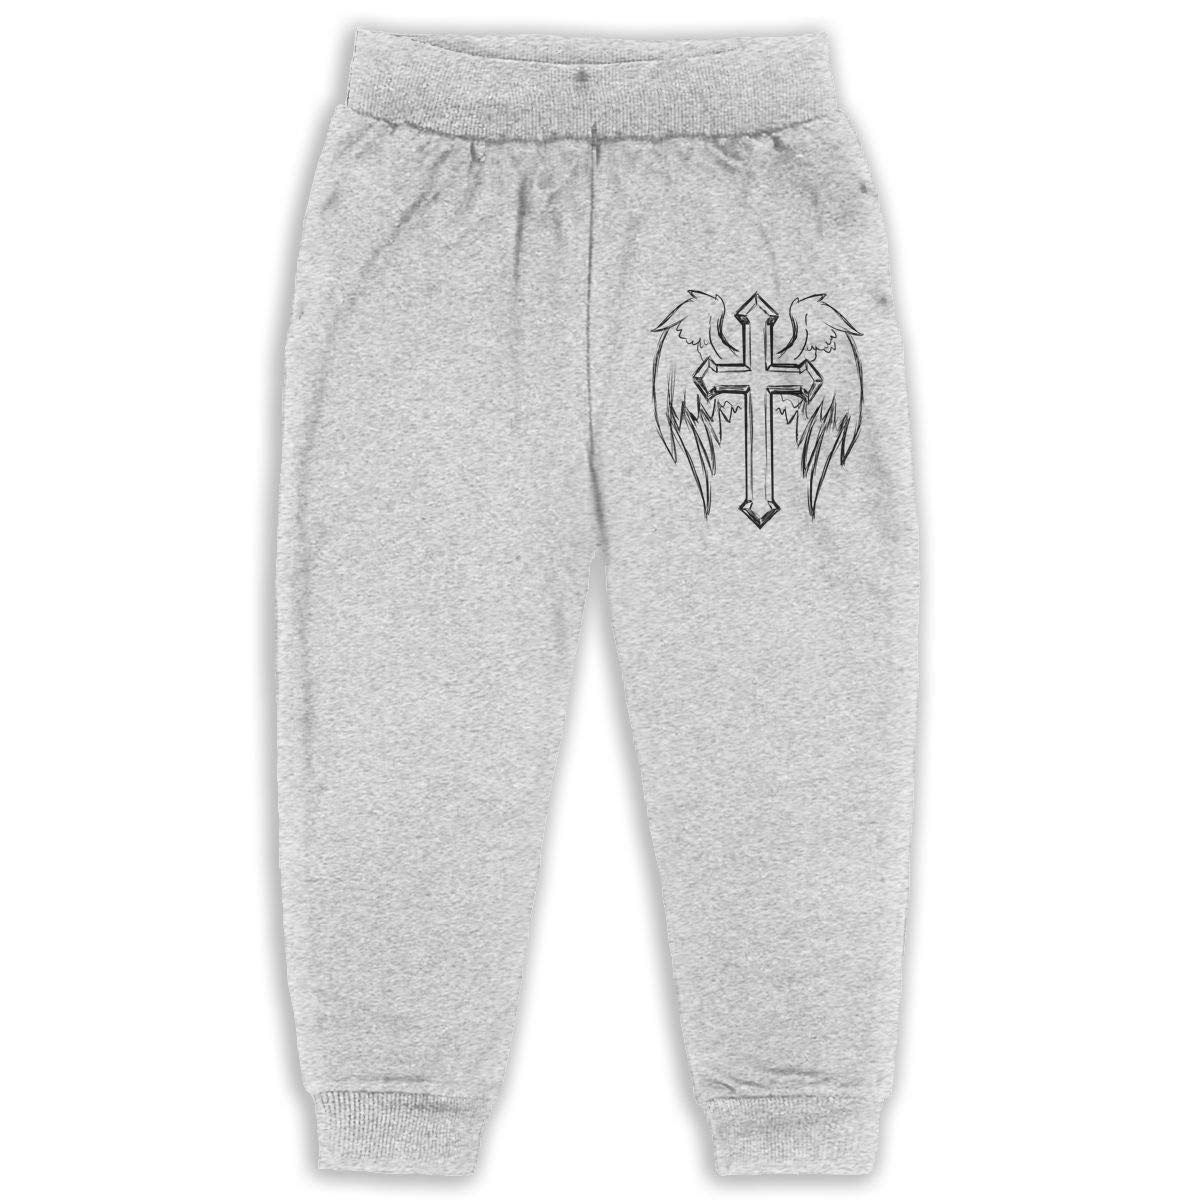 Fleece Active Joggers Elastic Pants DaXi1 Catholic Sweatpants for Boys /& Girls